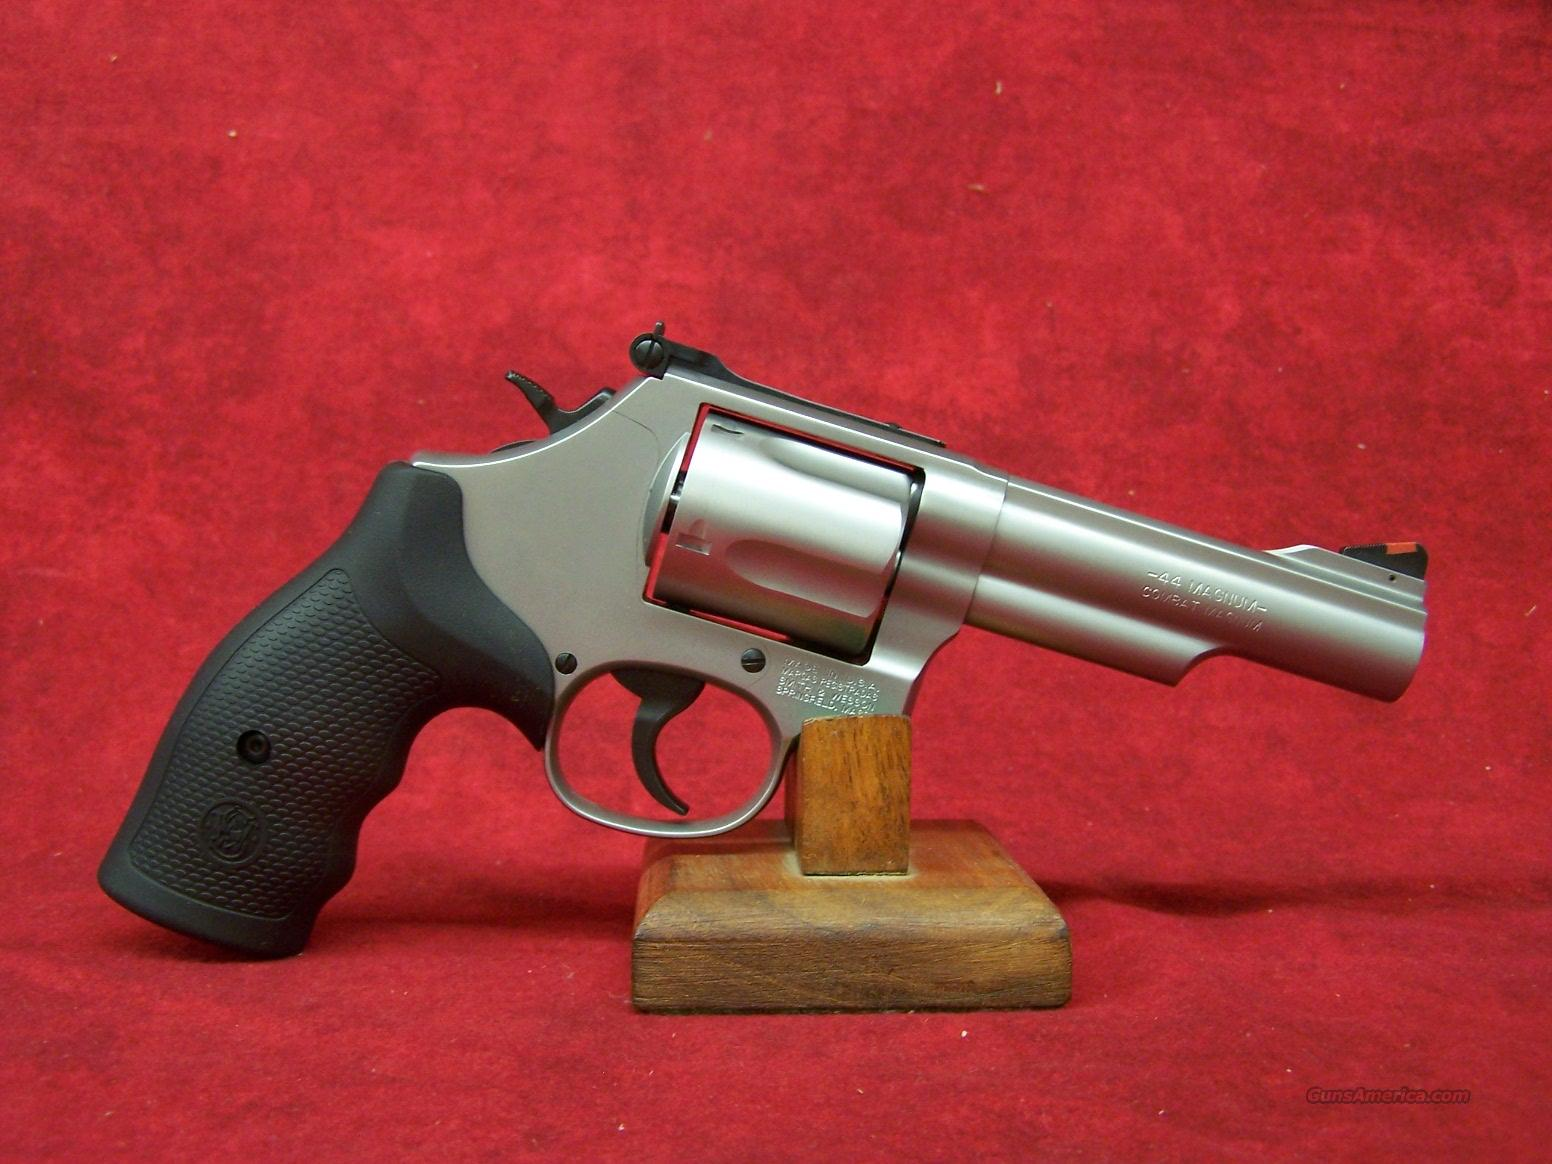 Smith & Wesson Model 69 .44 Magnum/.44 Special 4.25 Inch Stainless Steel Barrel (162069)  Guns > Pistols > Smith & Wesson Revolvers > Full Frame Revolver